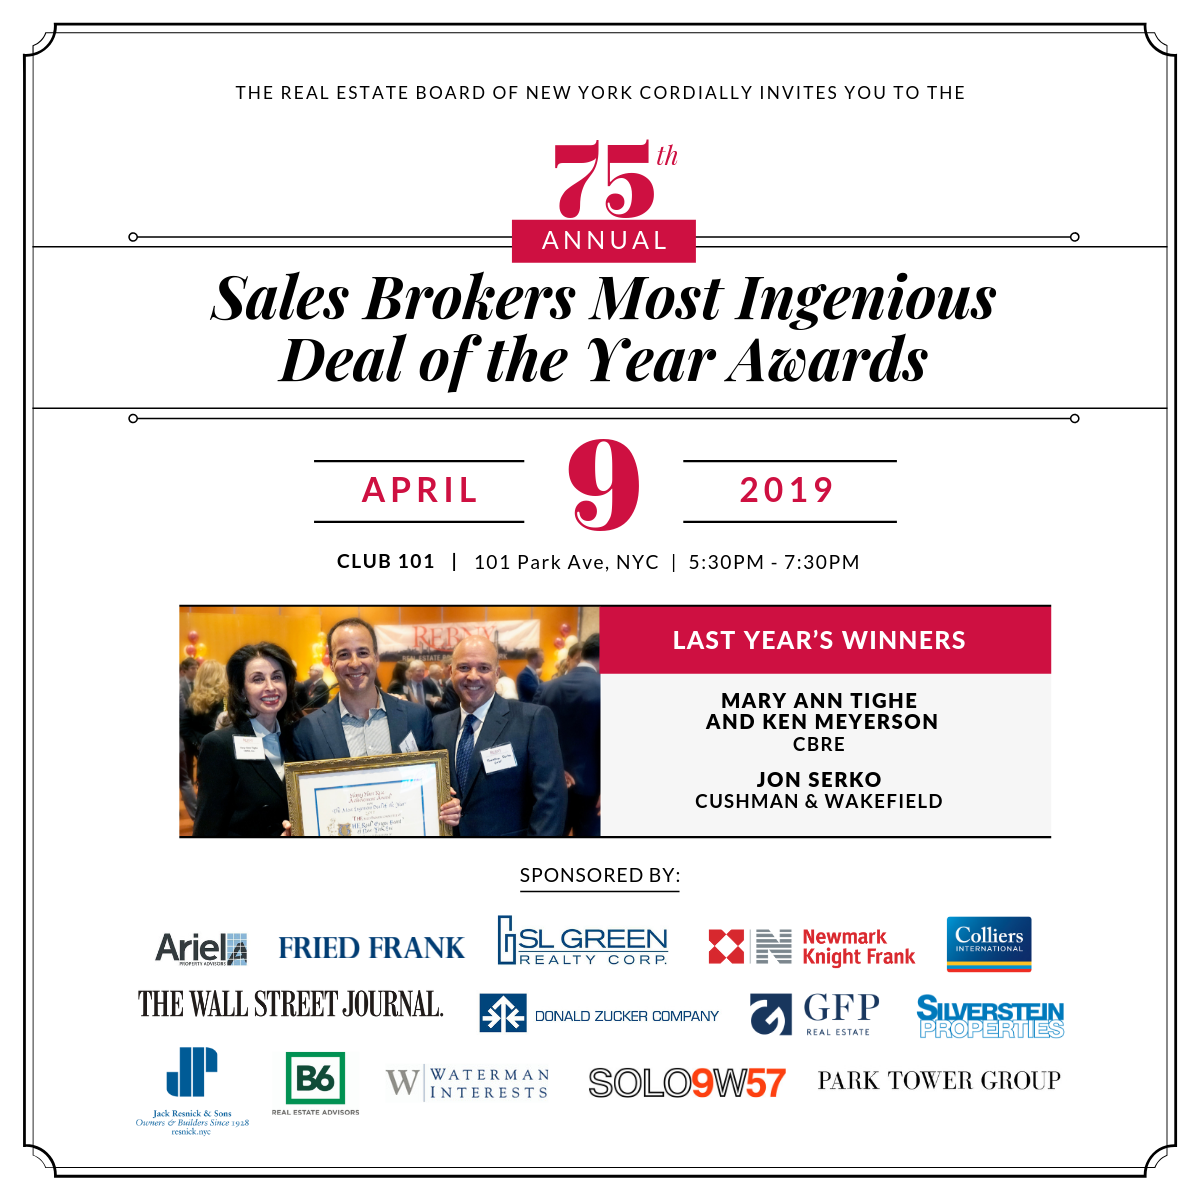 75th Annual Sales Brokers Most Ingenious Deal of the Year Awards Cocktail Party